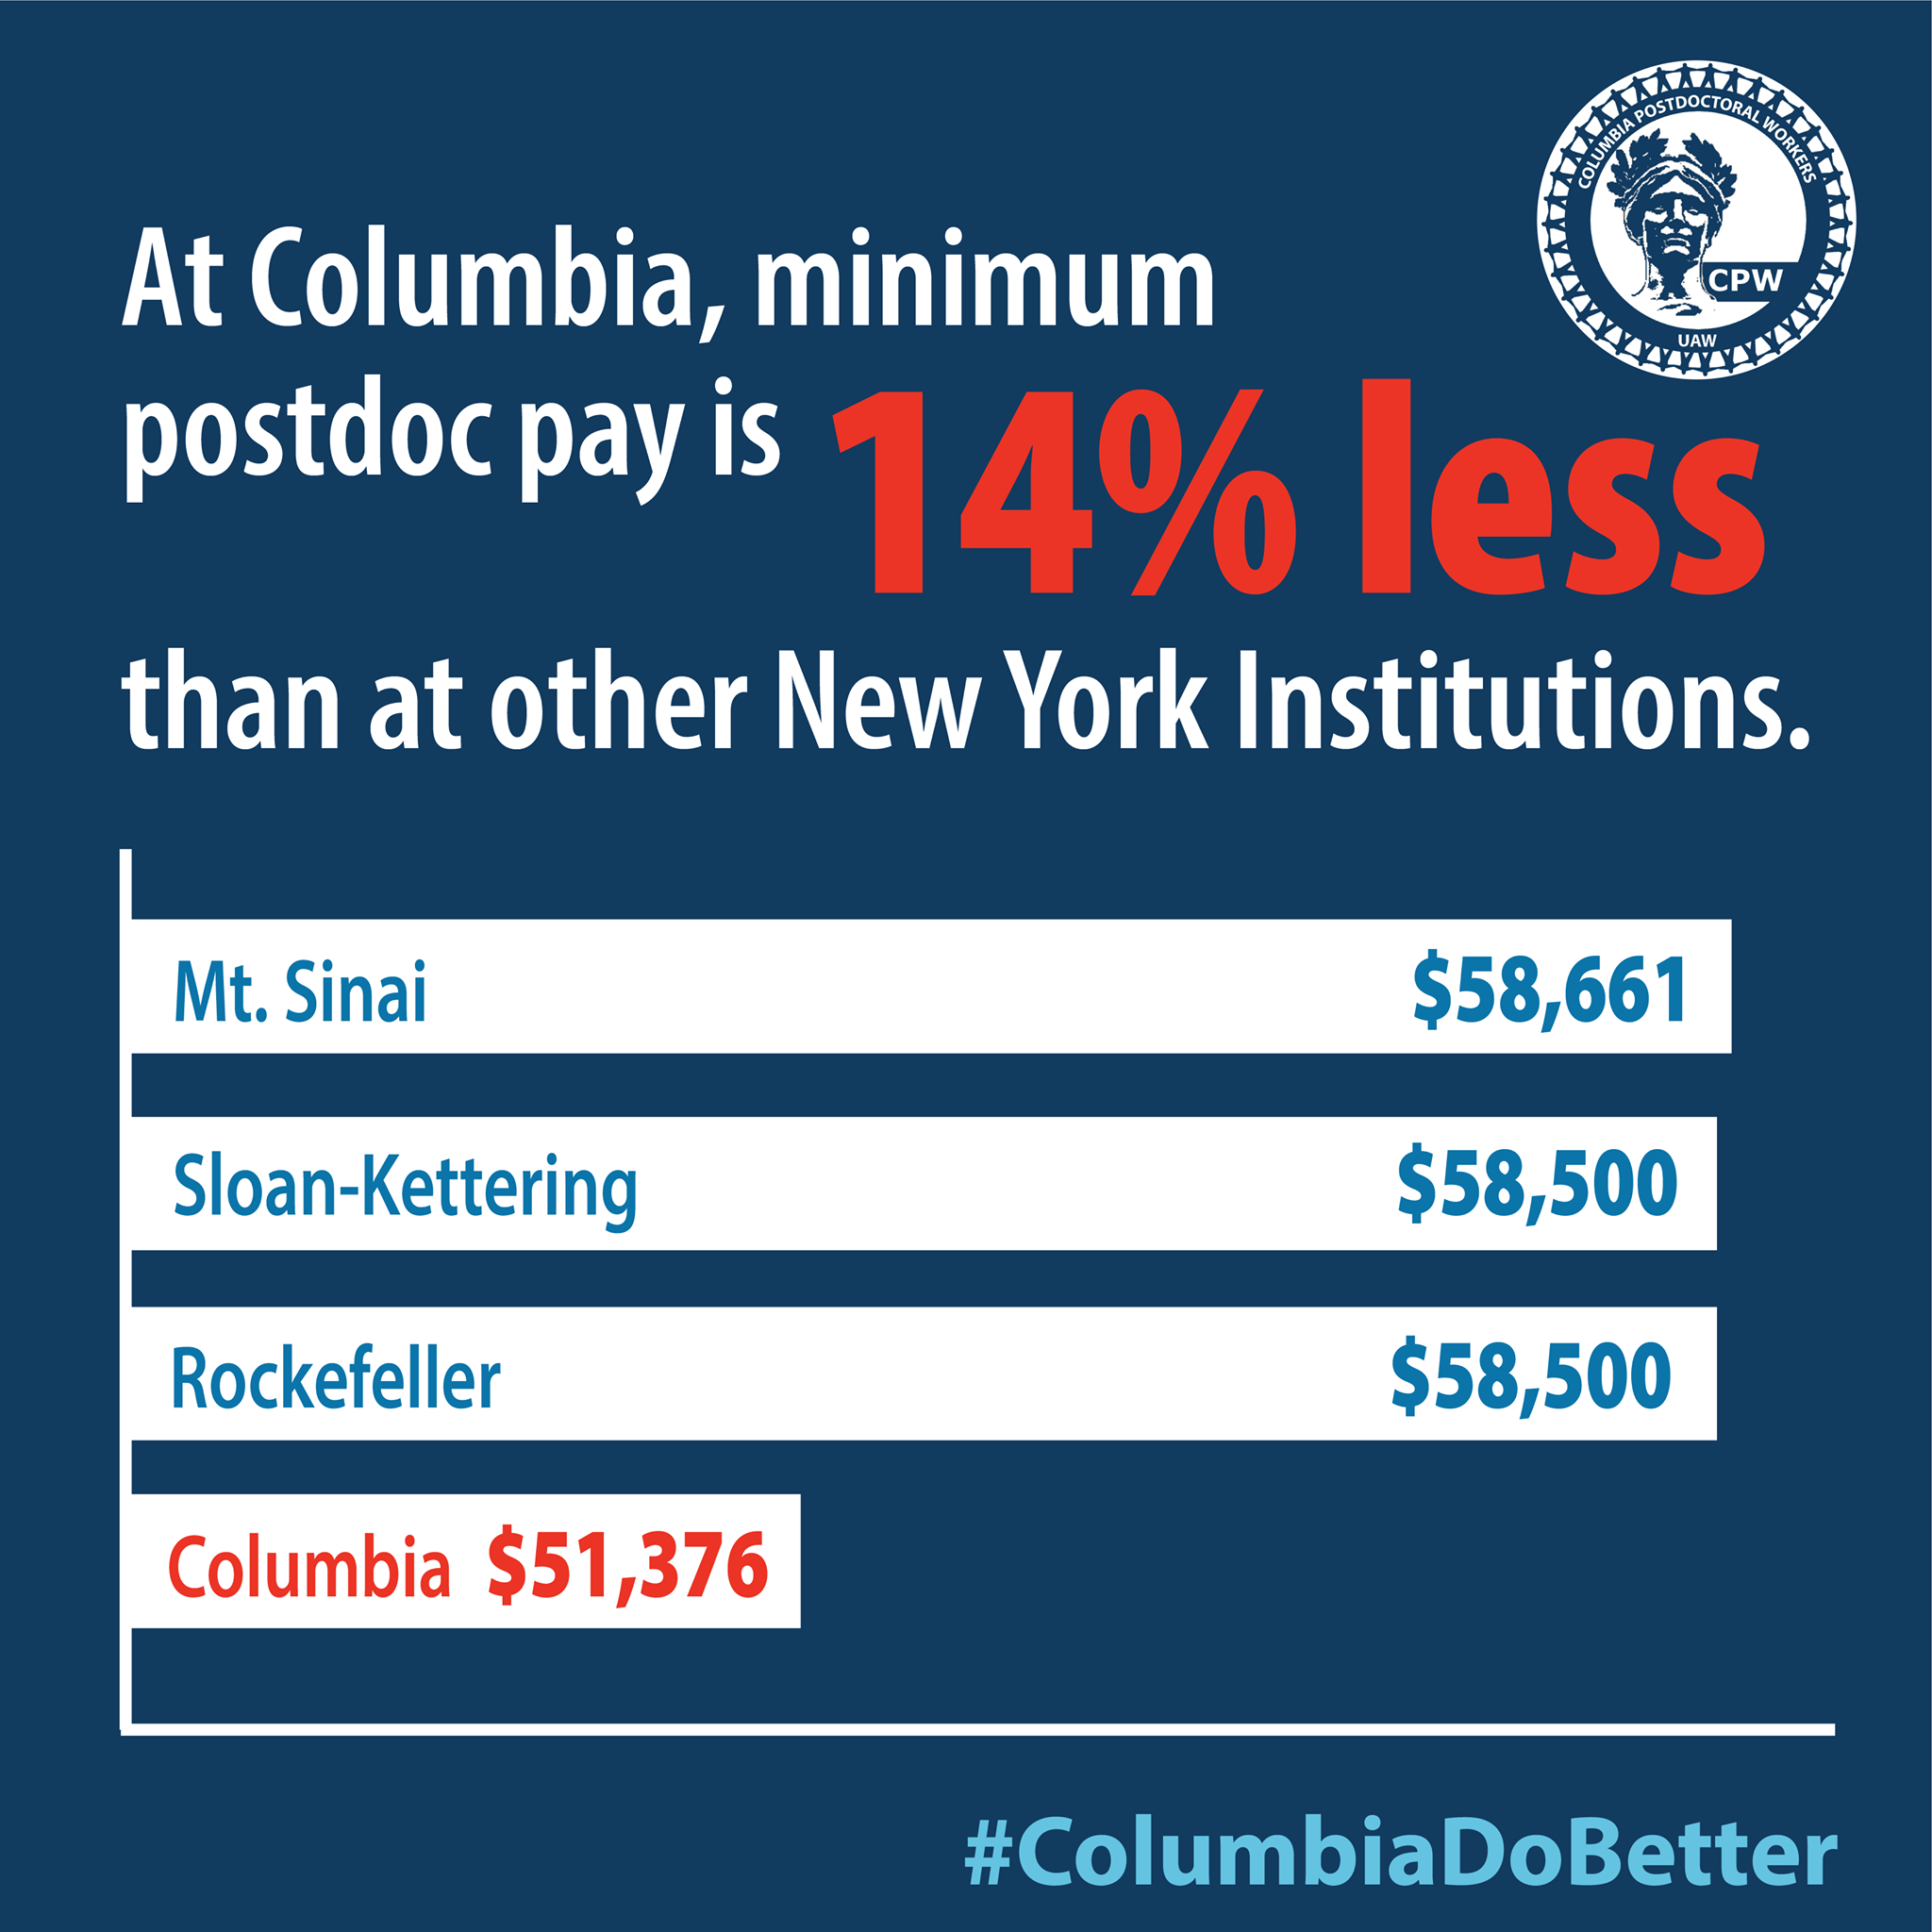 Fair compensation can build a stronger, more inclusive research community at Columbia.